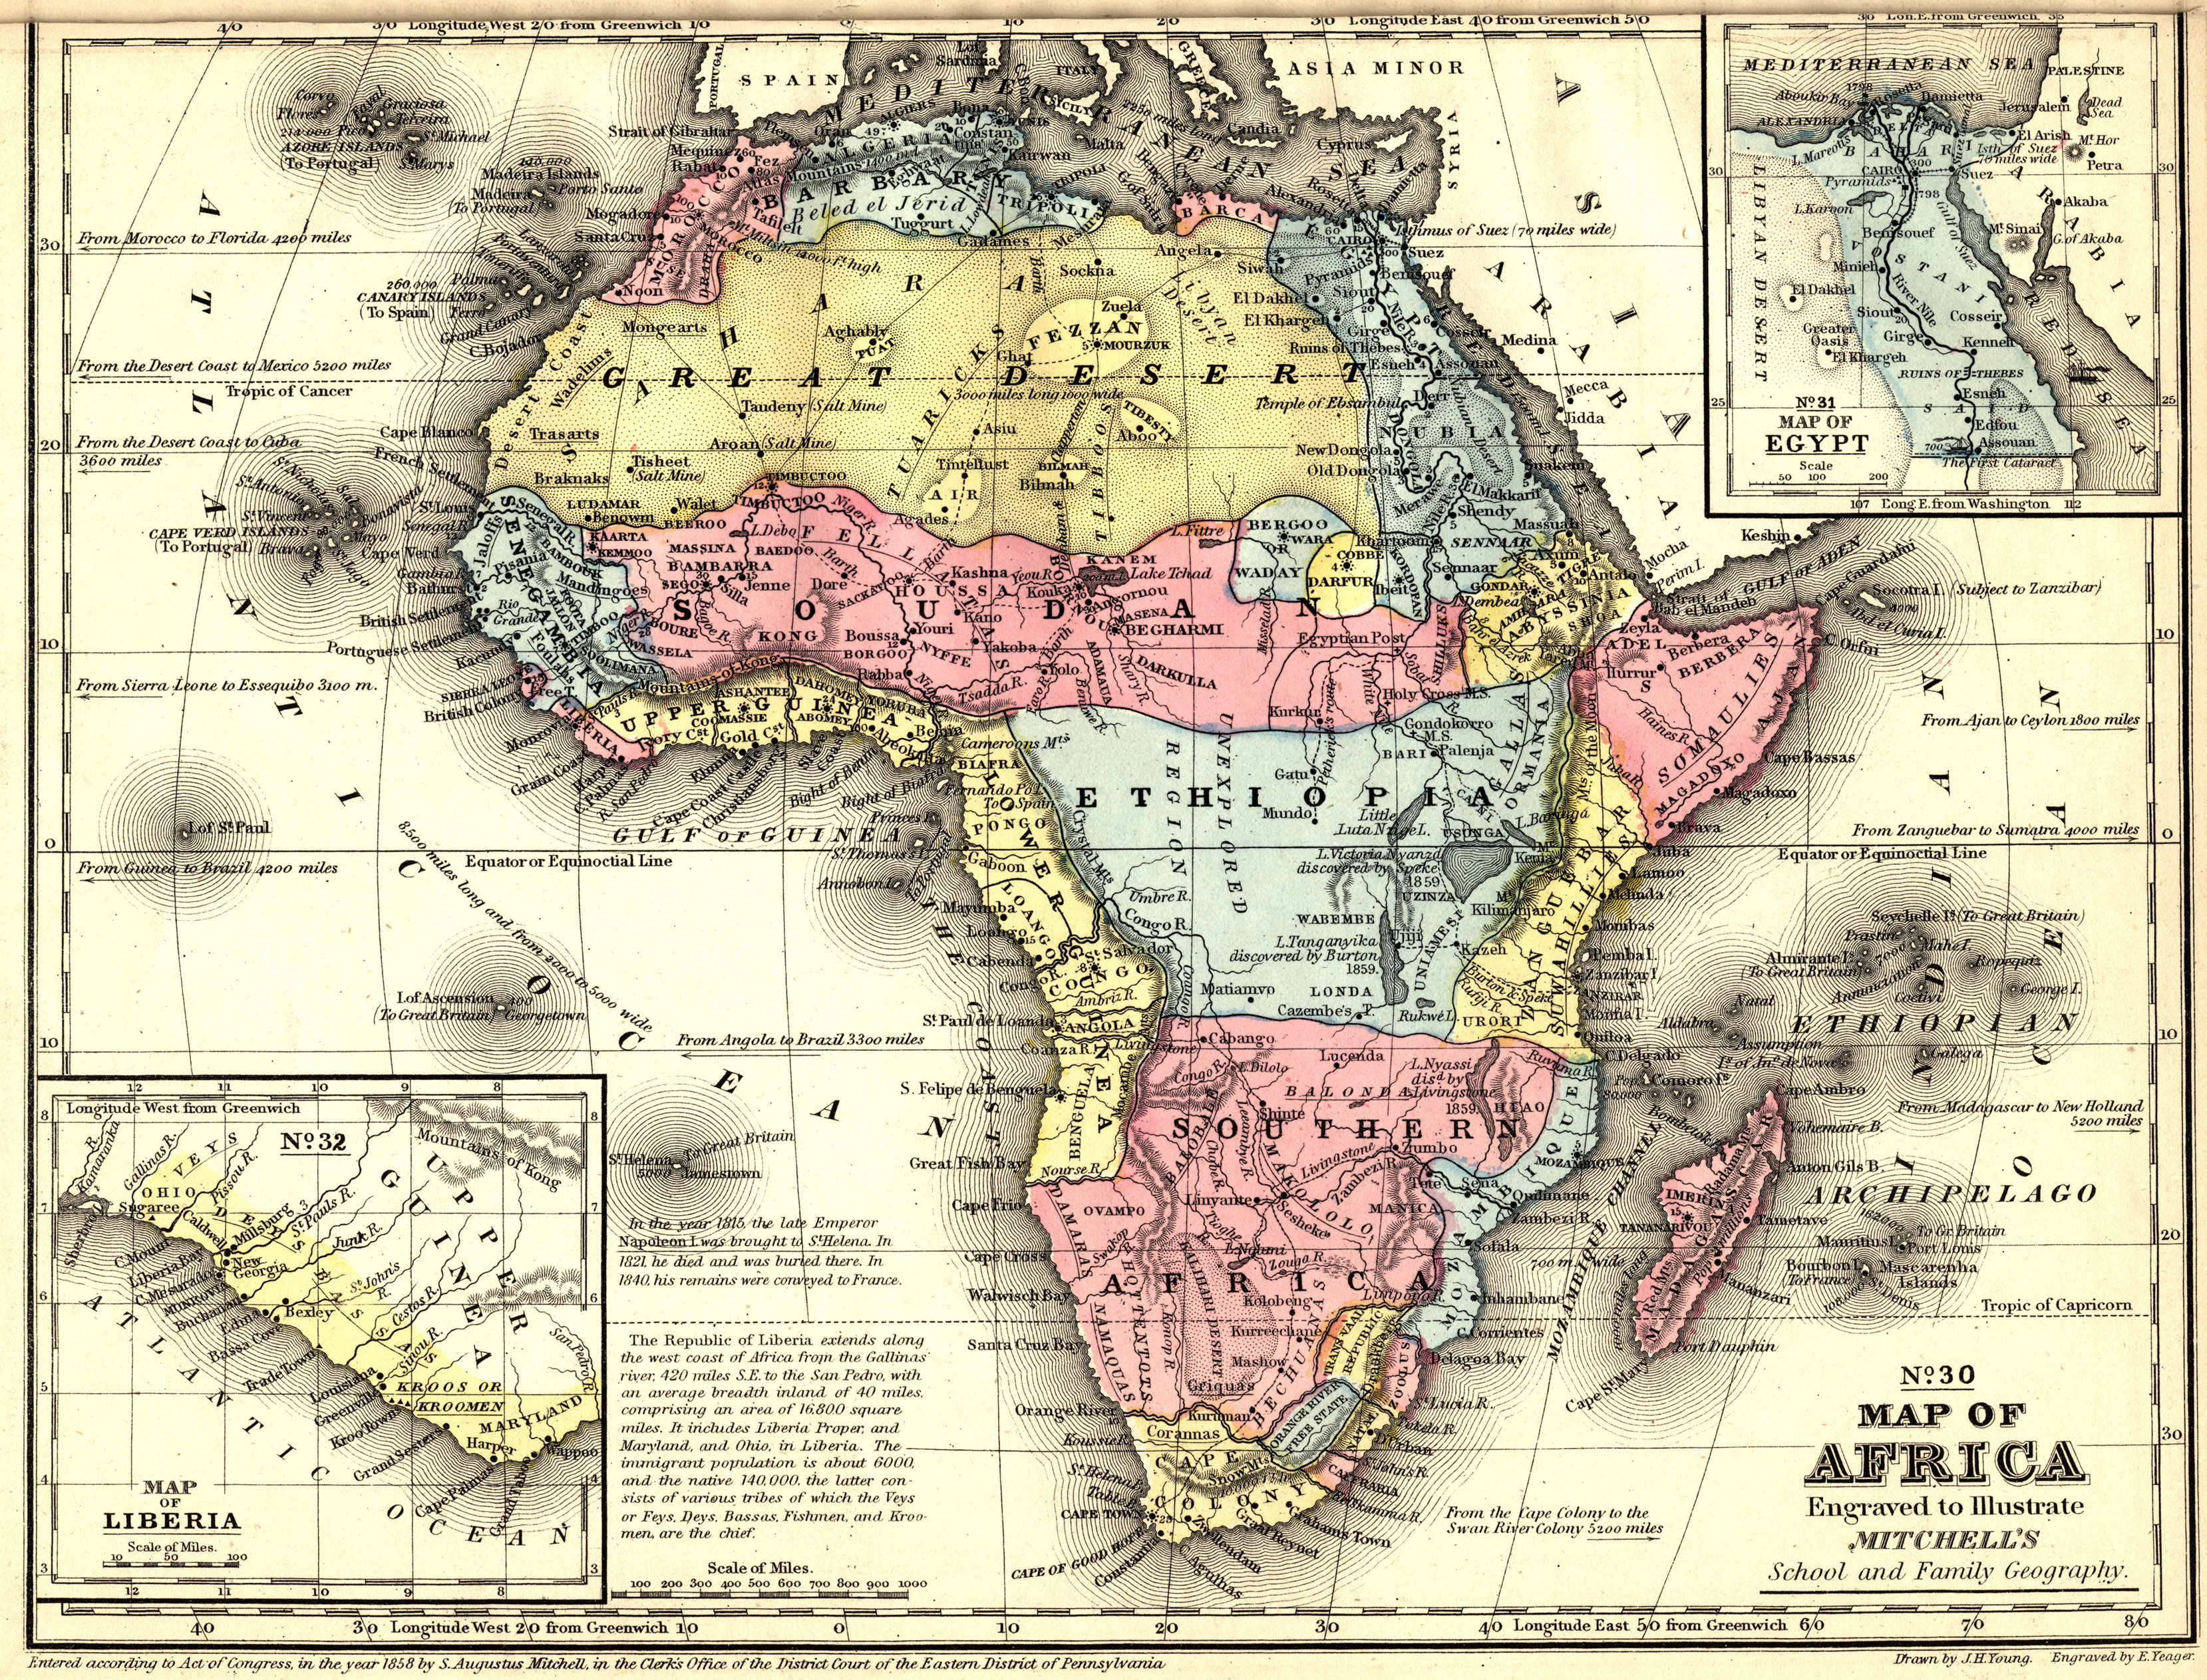 19th Century Africa Map.Africa 1866 Scanned Maps Map Library Msu Libraries